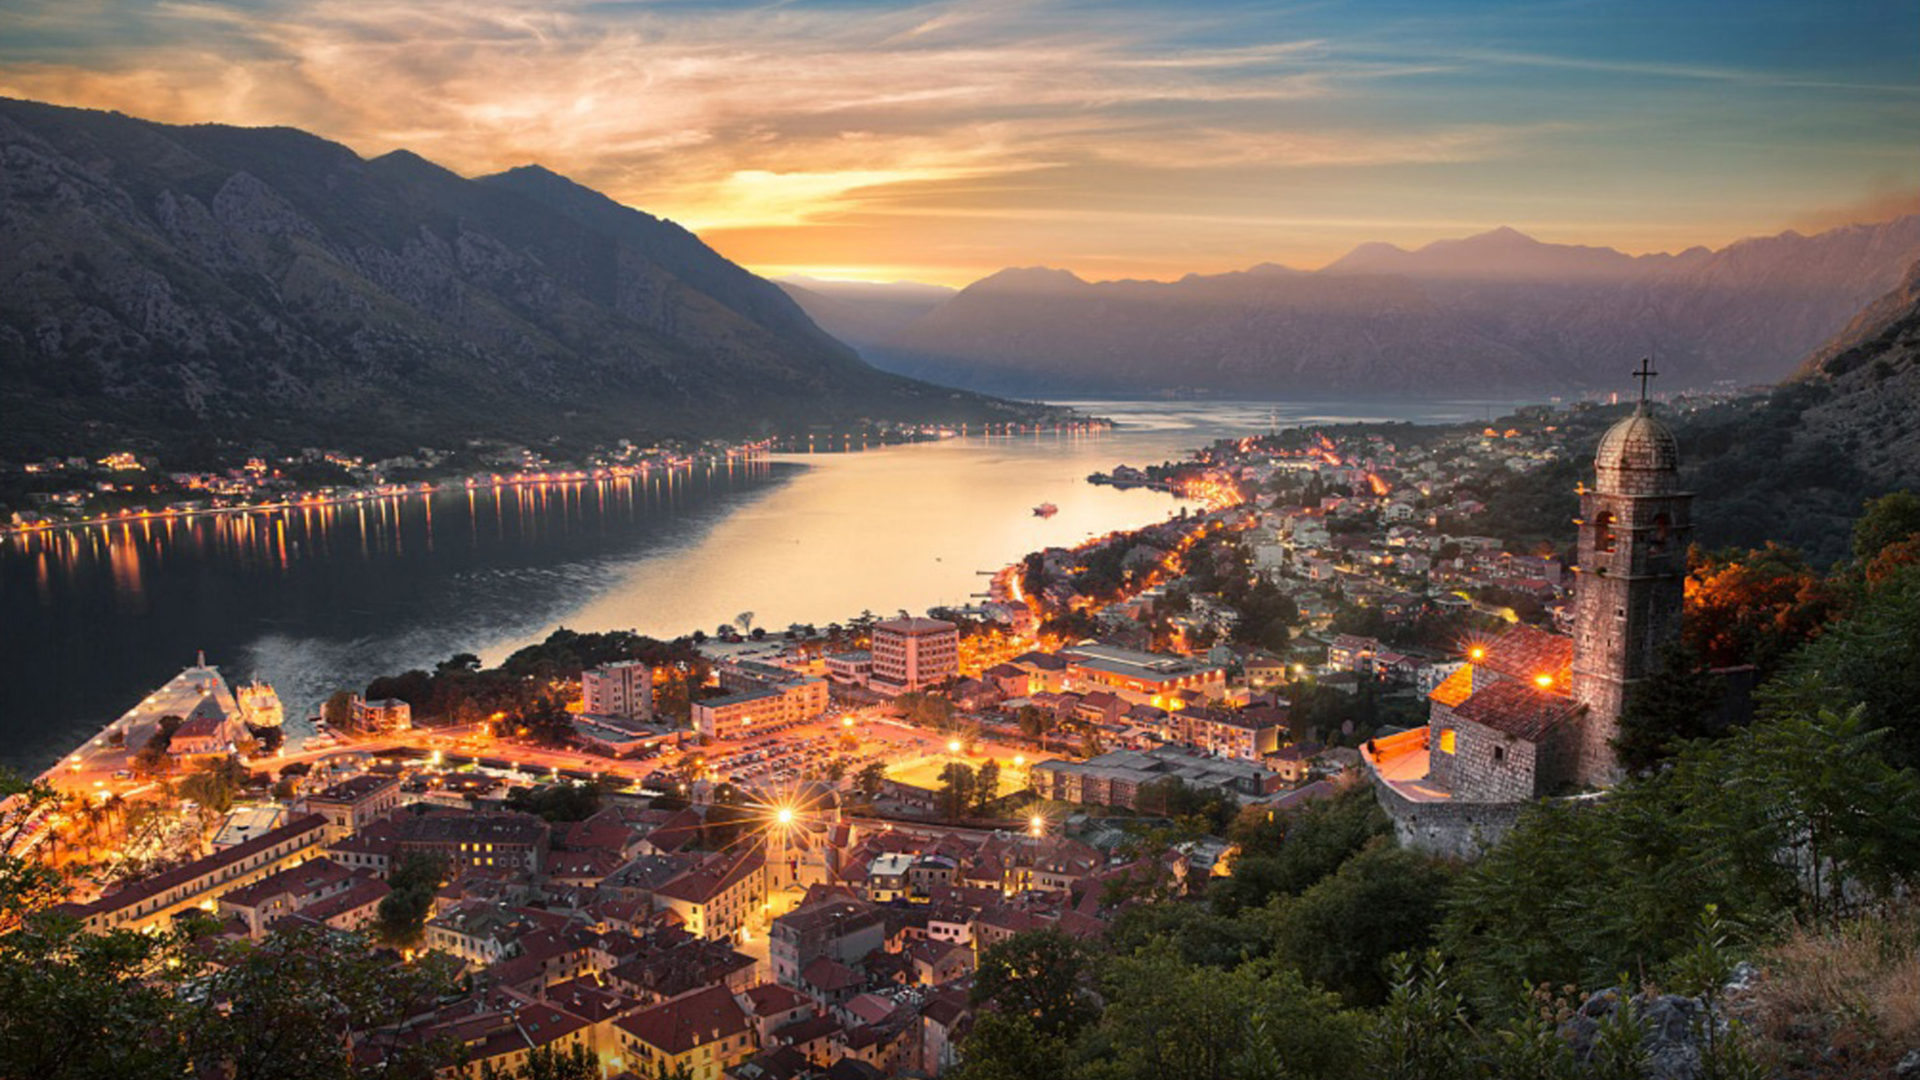 Inter Wallpaper Hd Montenegro City Kotor At Night Desktop Wallpaper Hd